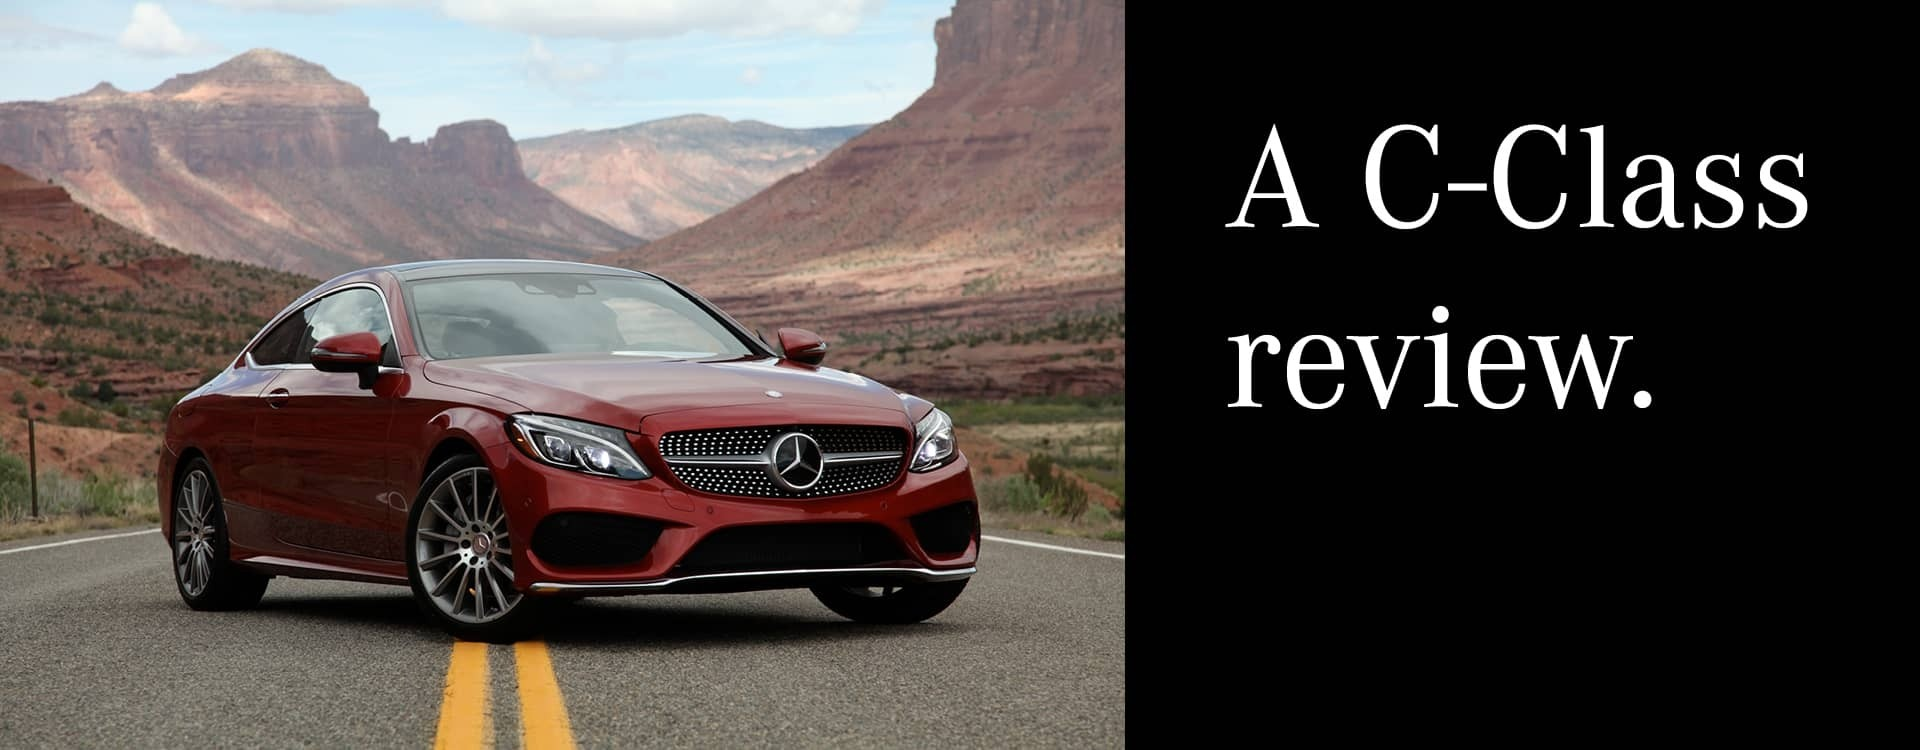 A c class review mercedes benz of austin for Mercedes benz of austin austin tx